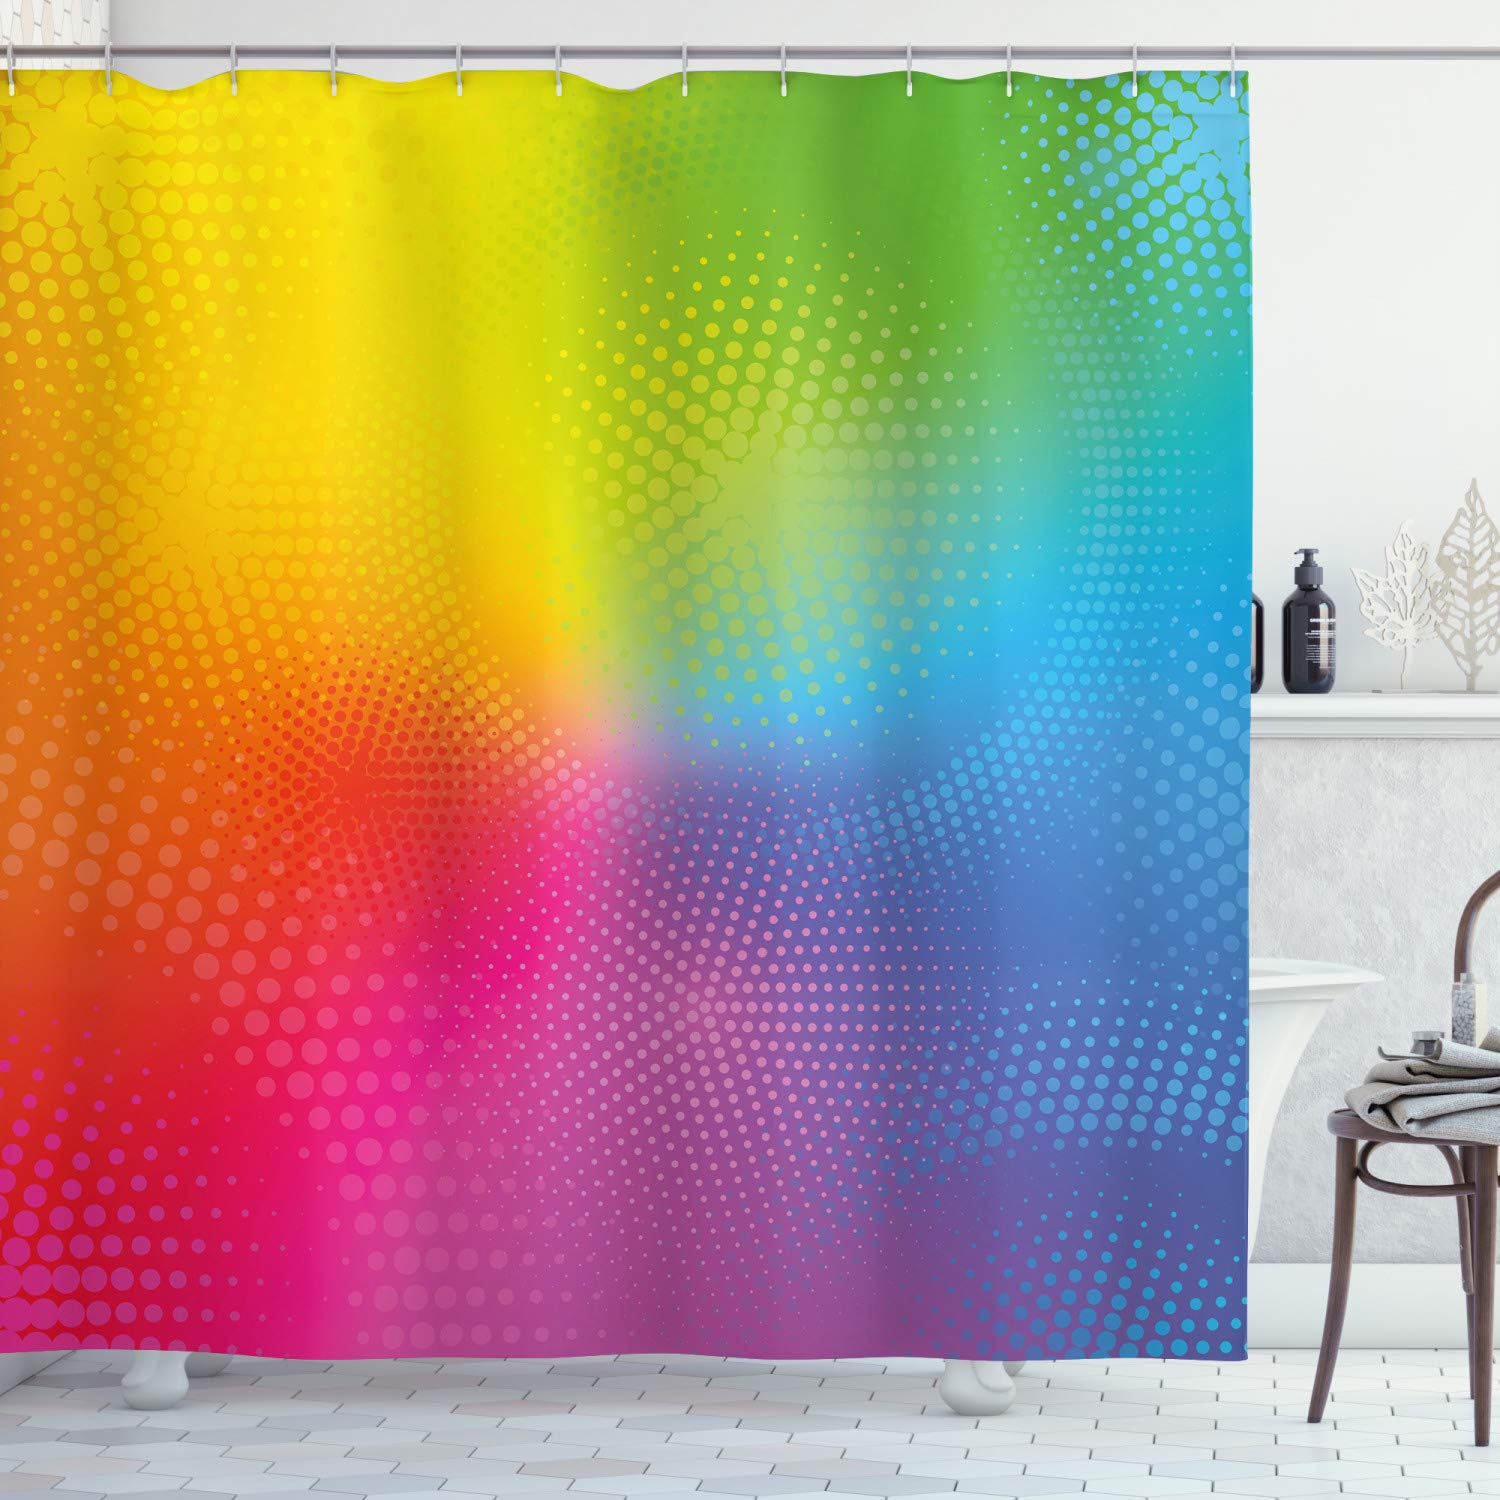 """Ambesonne Rainbow Shower Curtain, Vibrant Neon Colors Circles Rounds Dots Radiant Composition Iridescent Effect Print, Cloth Fabric Bathroom Decor Set with Hooks, 70"""" Long, Rainbow Colors"""